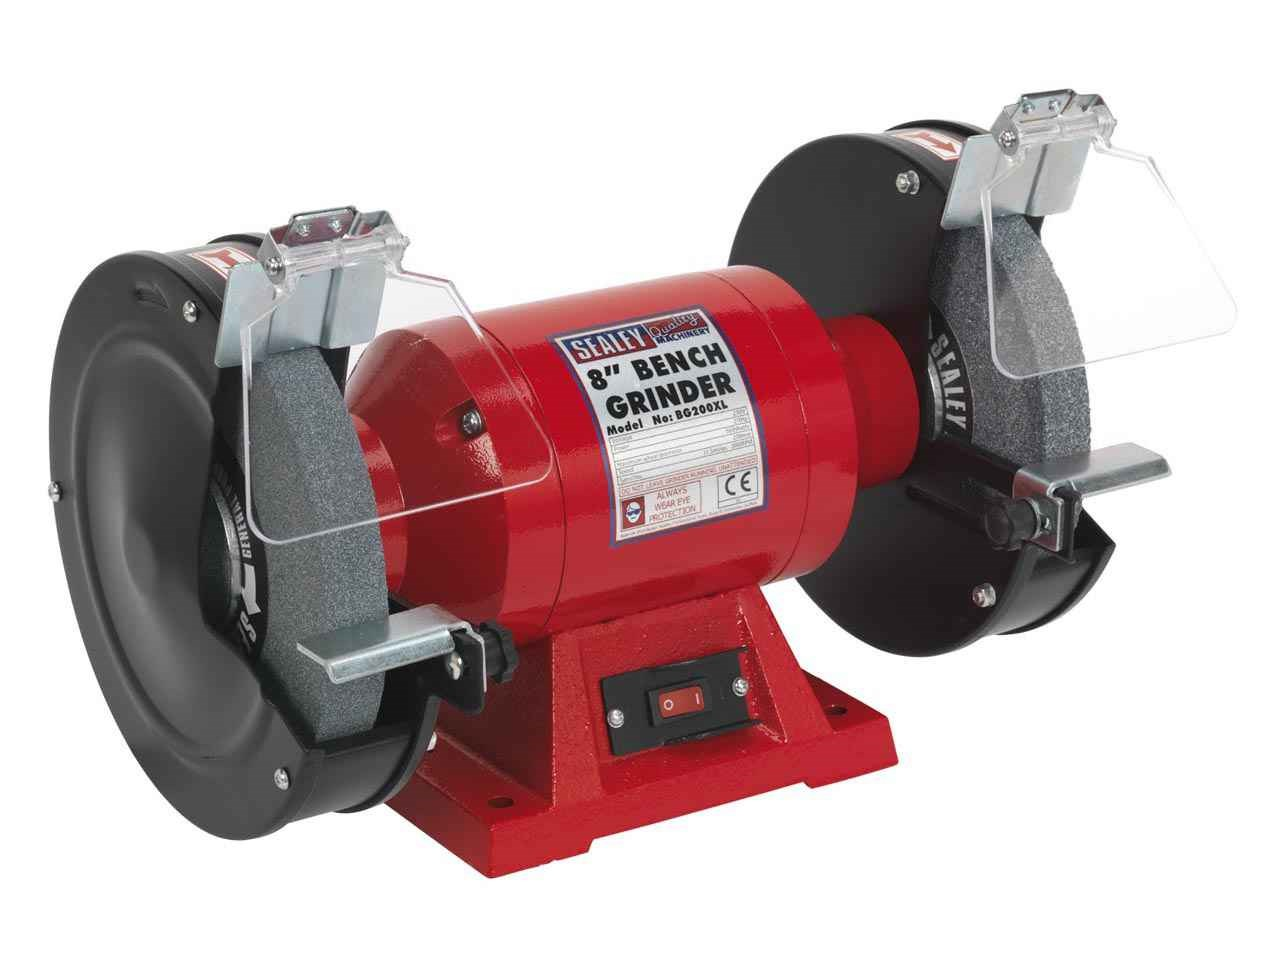 Admirable Sealey Bg200Xl 230V Bench Grinder 200Mm 560W Alphanode Cool Chair Designs And Ideas Alphanodeonline